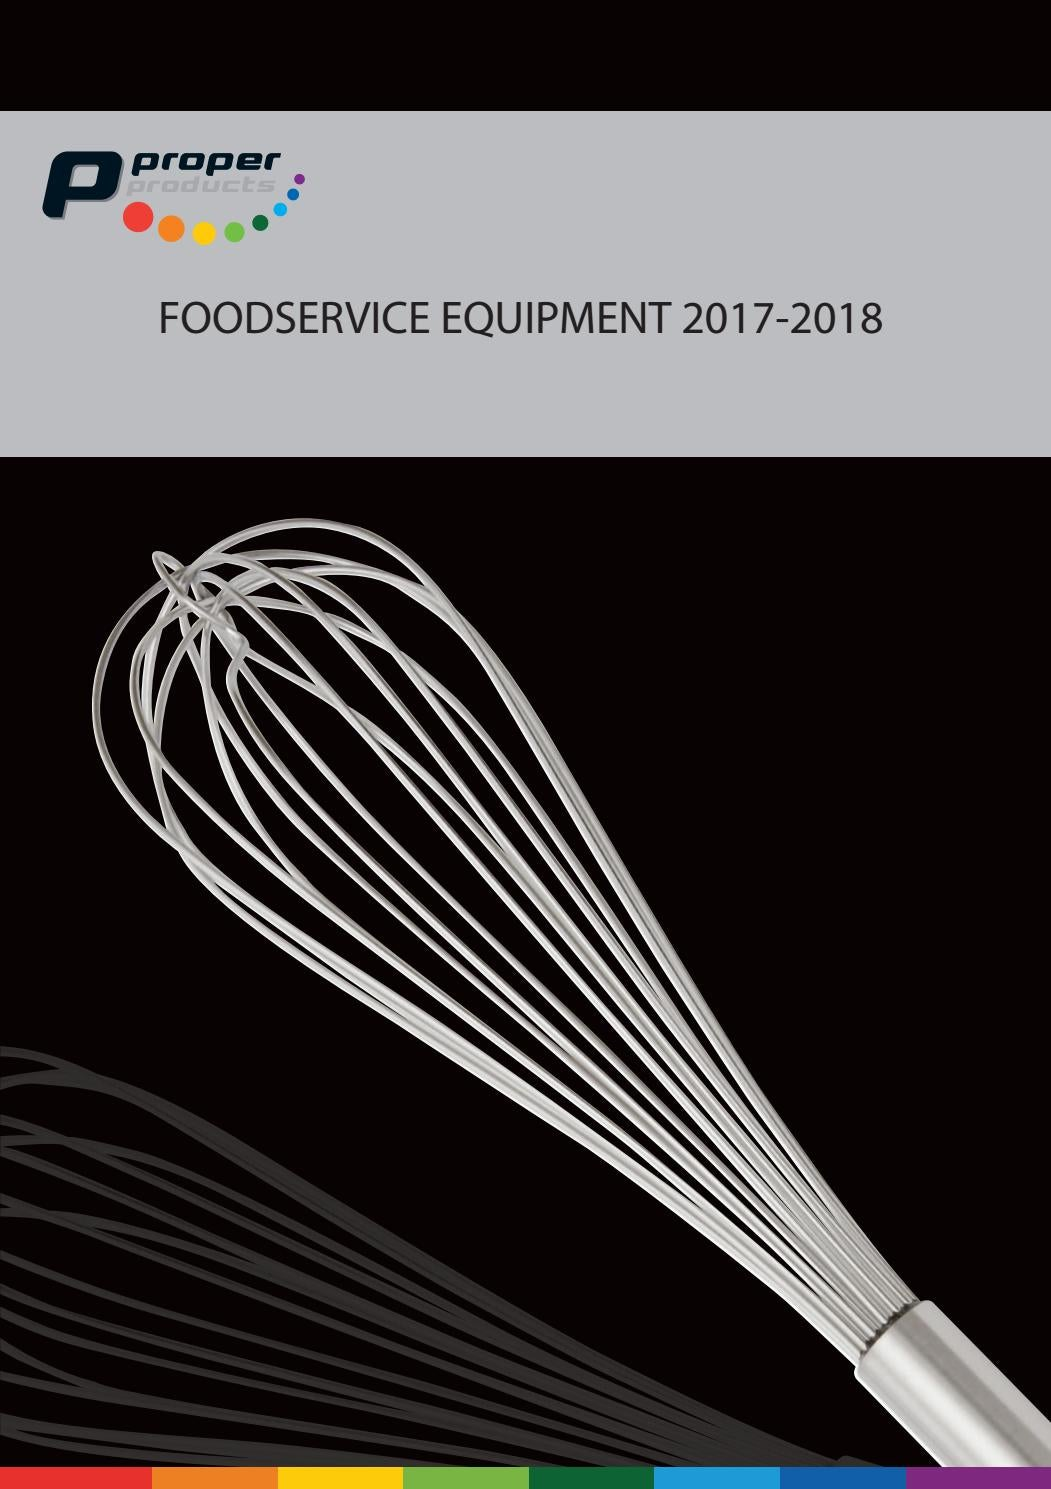 Maximale Lengte Gasslang Nl Proper Foodservice Equipment 2017 By Proper Products Issuu